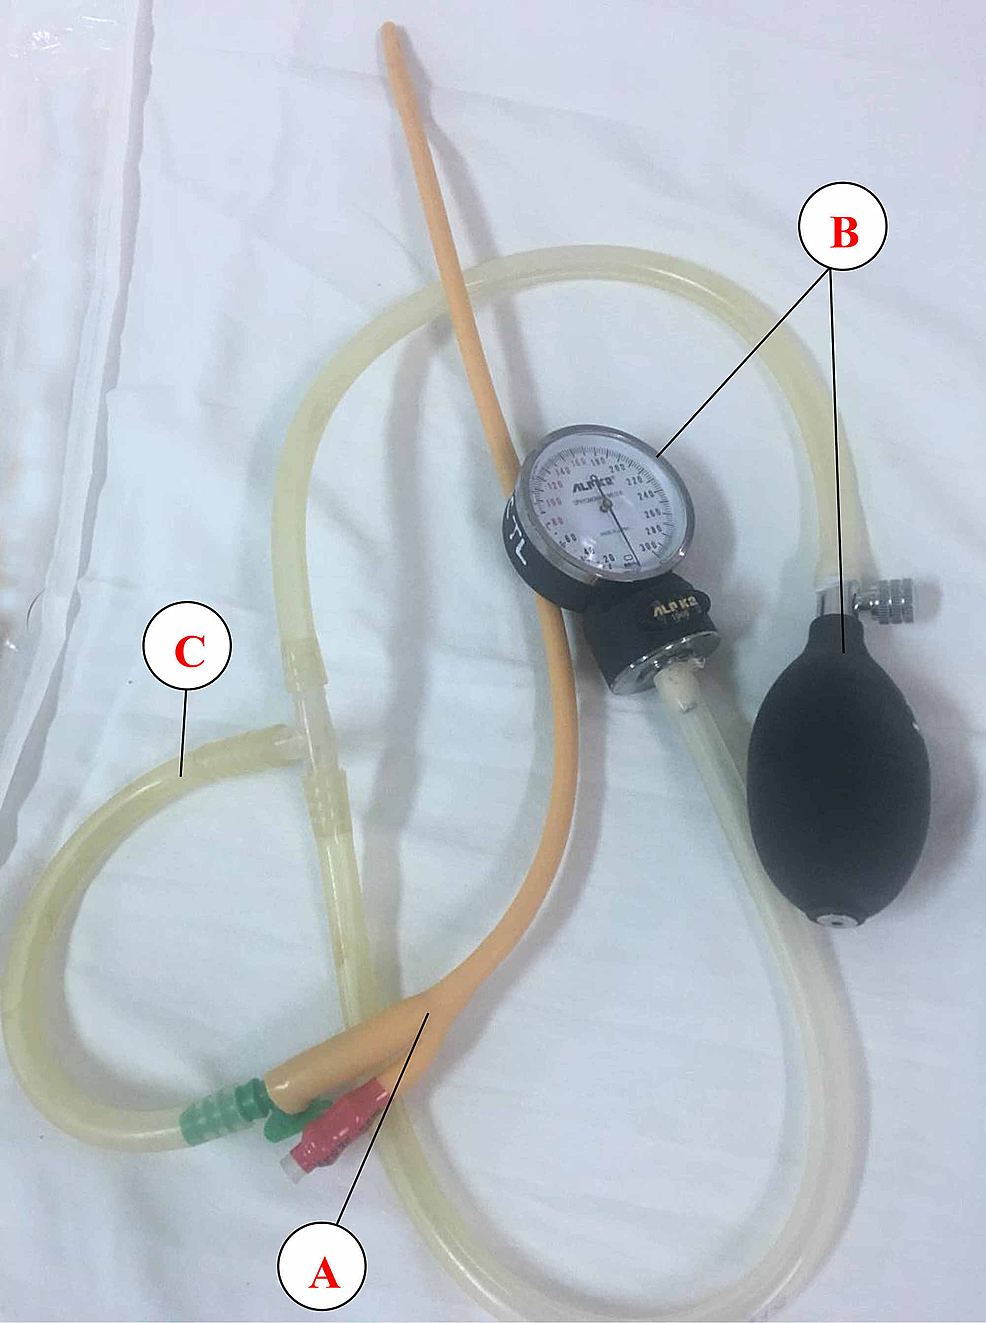 The-device-was-constructed-from-a-Foley-catheter-(Procath,-Ishwari-Healthcare-Pvt.-Ltd.)-(A),-an-ALPK2-sphygmomanometer-(Japan)-(B),-and-plastic-tubes-of-an-appropriate-size-(C).-It-was-completely-sterilized-before-use.